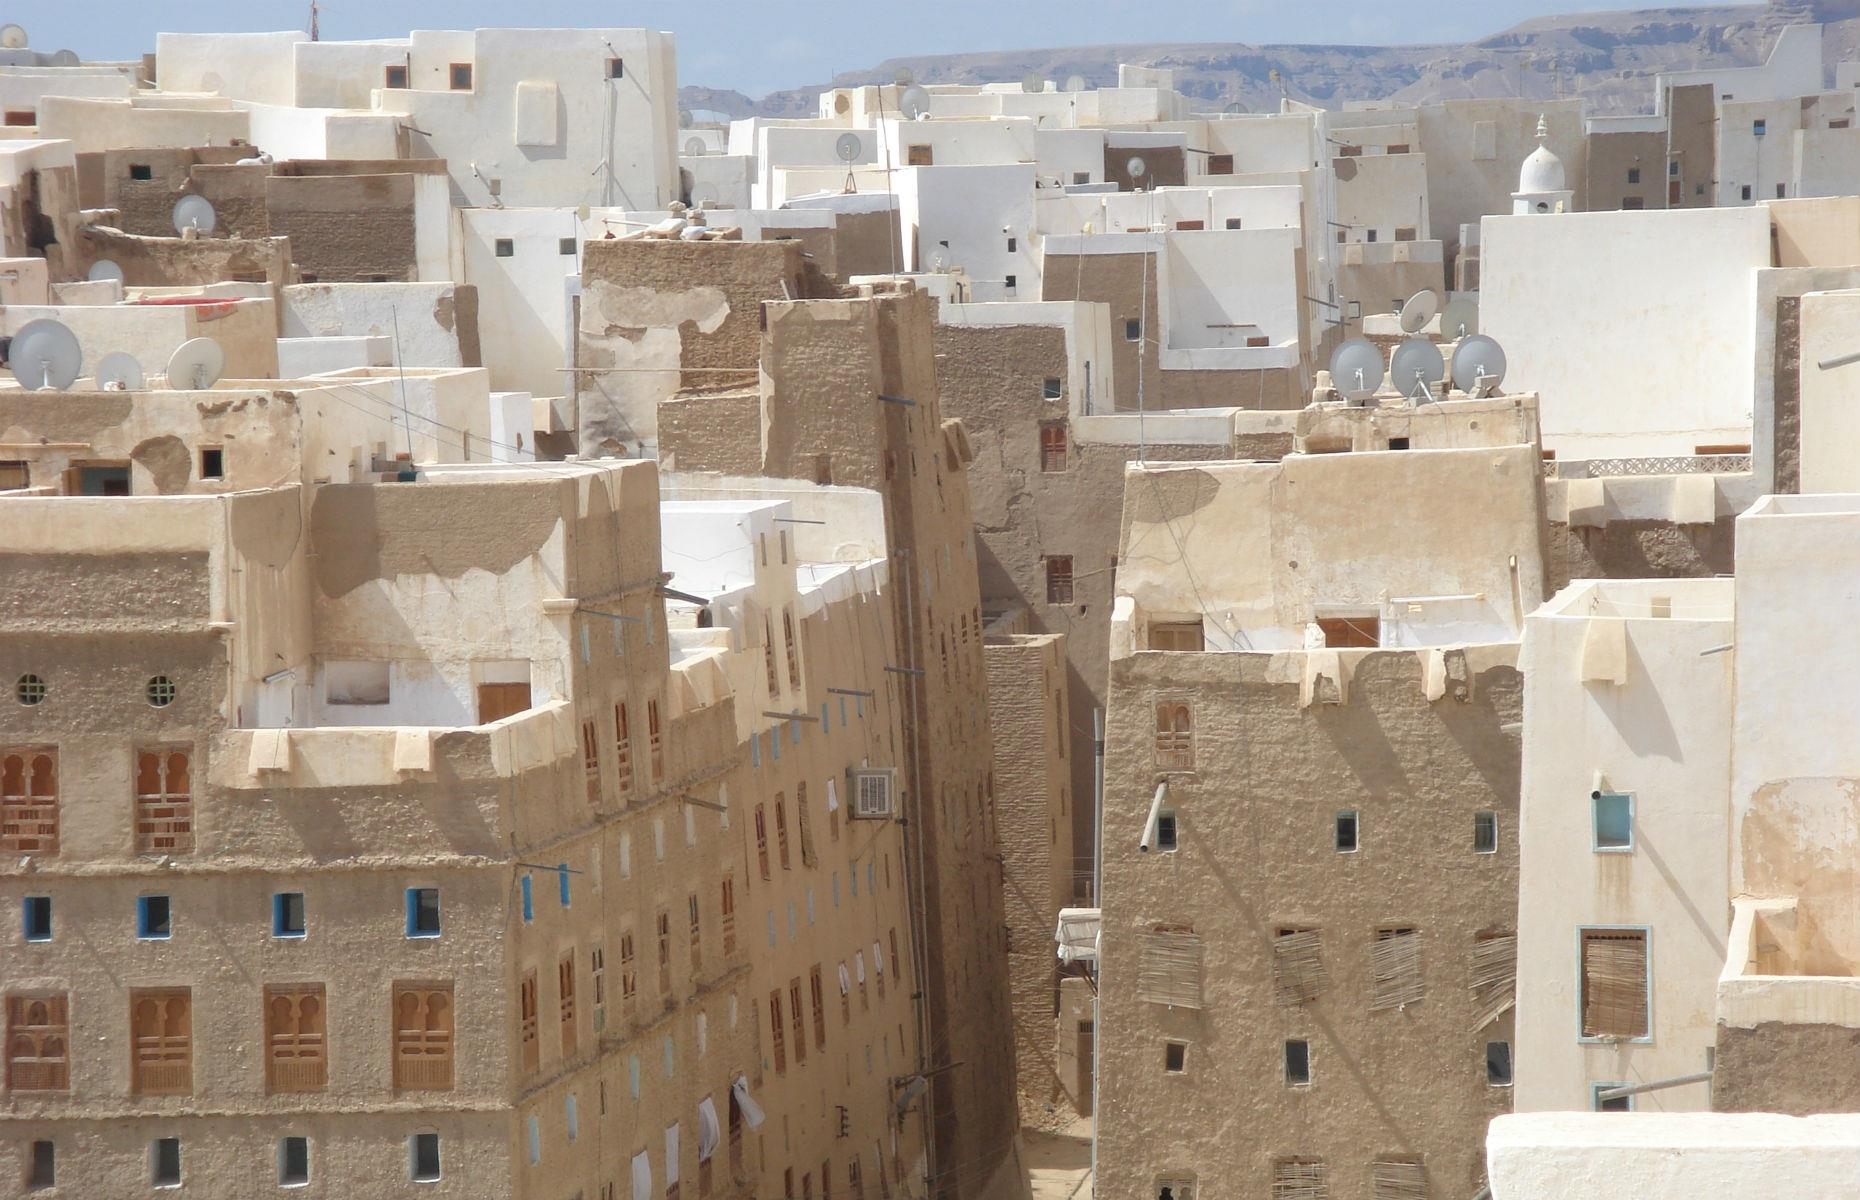 "Slide 53 of 53: Nicknamed ""the Manhattan of the desert"", the 16th-century city of Shibam, surrounded by a wall, is hailed by UNESCO as ""one of the oldest and best examples of urban planning based on the principle of vertical construction"". But the city is under threat due to armed conflict in the country. UNESCO placed the city on the List of World Heritage in Danger in 2015, with the director-general Irina Bokova saying: ""In addition to causing terrible human suffering, these attacks are destroying Yemen's unique cultural heritage."" Now discover the amazing World Heritage Sites no one visits"